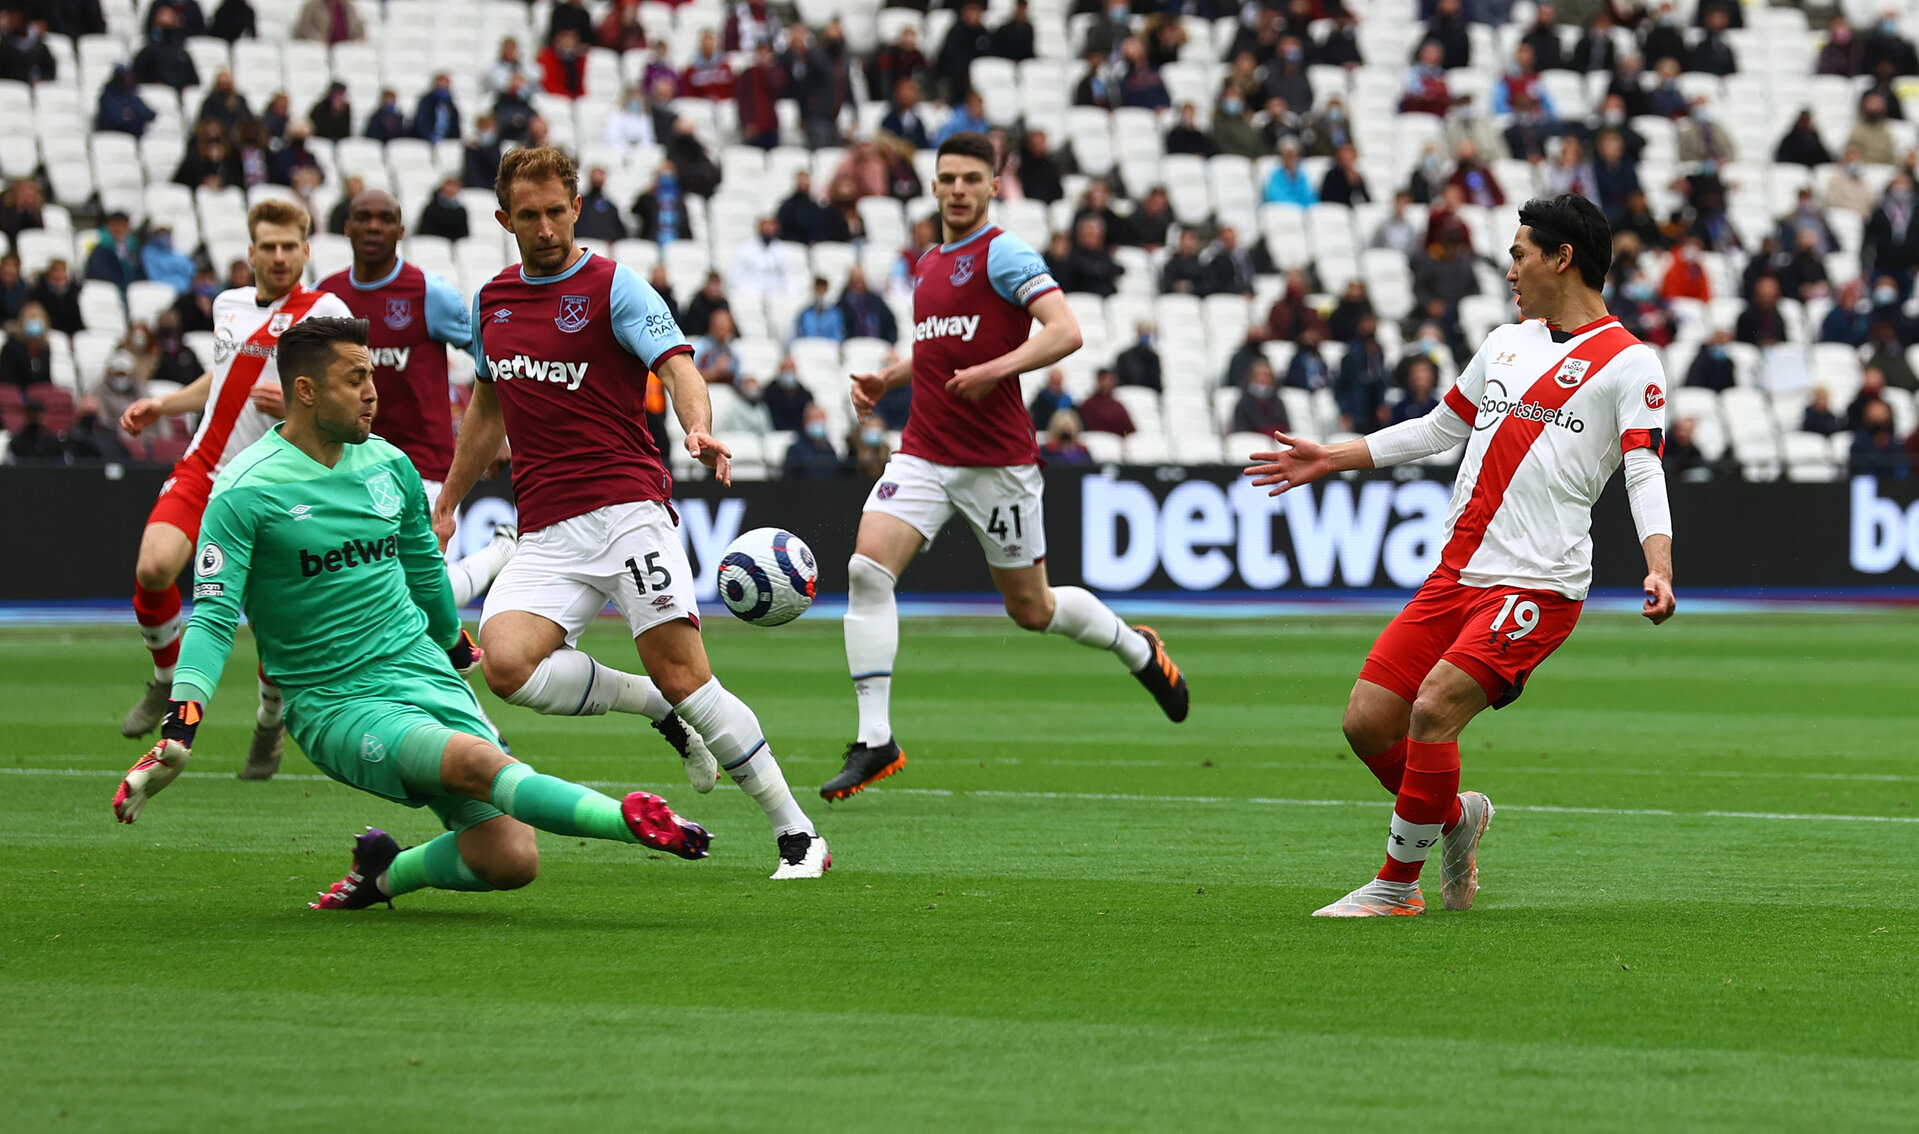 LONDON, ENGLAND - MAY 23: Takumi Minamino of Southampton shoots wide during the Premier League match between West Ham United and Southampton at London Stadium on May 23, 2021 in London, England. (Photo by Matt Watson/Southampton FC via Getty Images)